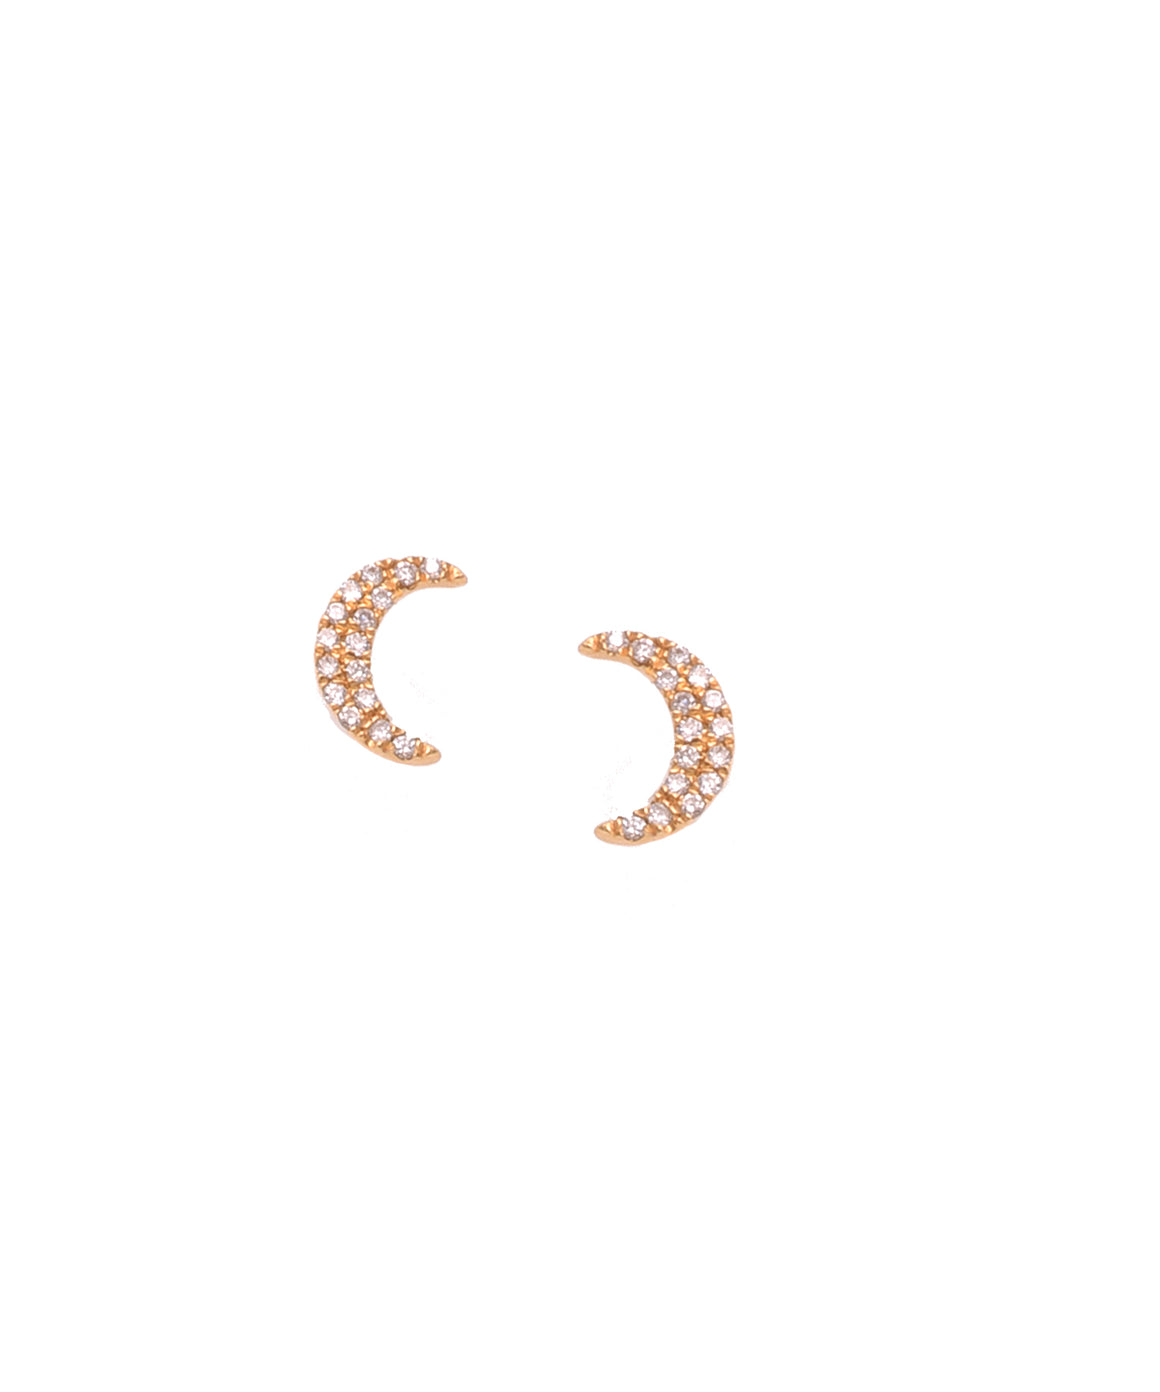 Tiny crescent stud earrings - Lesley Ann Jewels